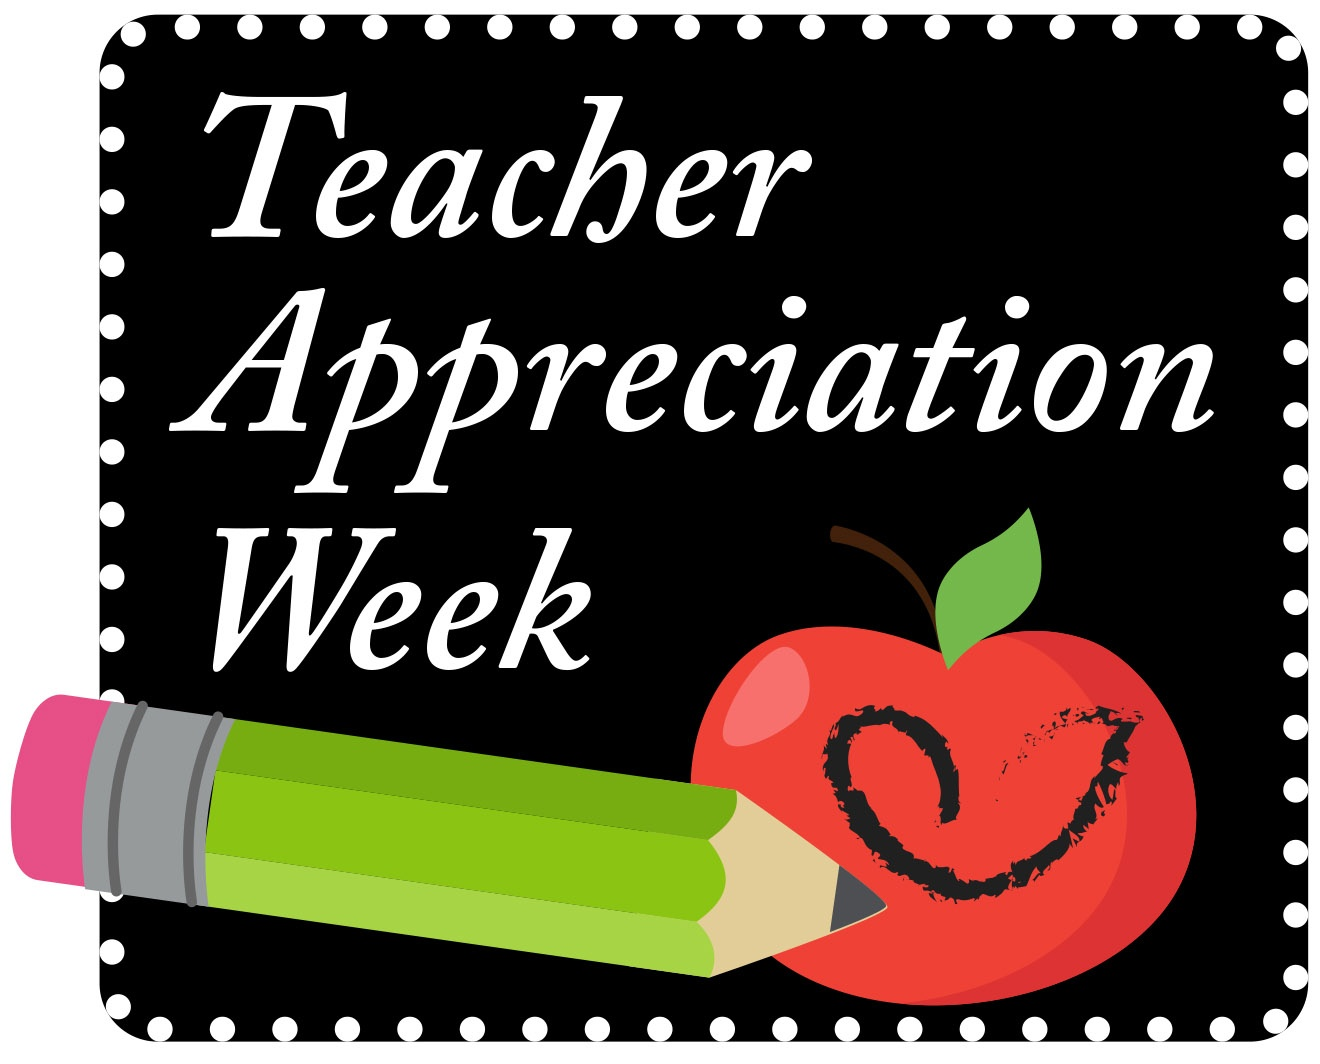 Happy valley school east. 2018 clipart teacher appreciation week